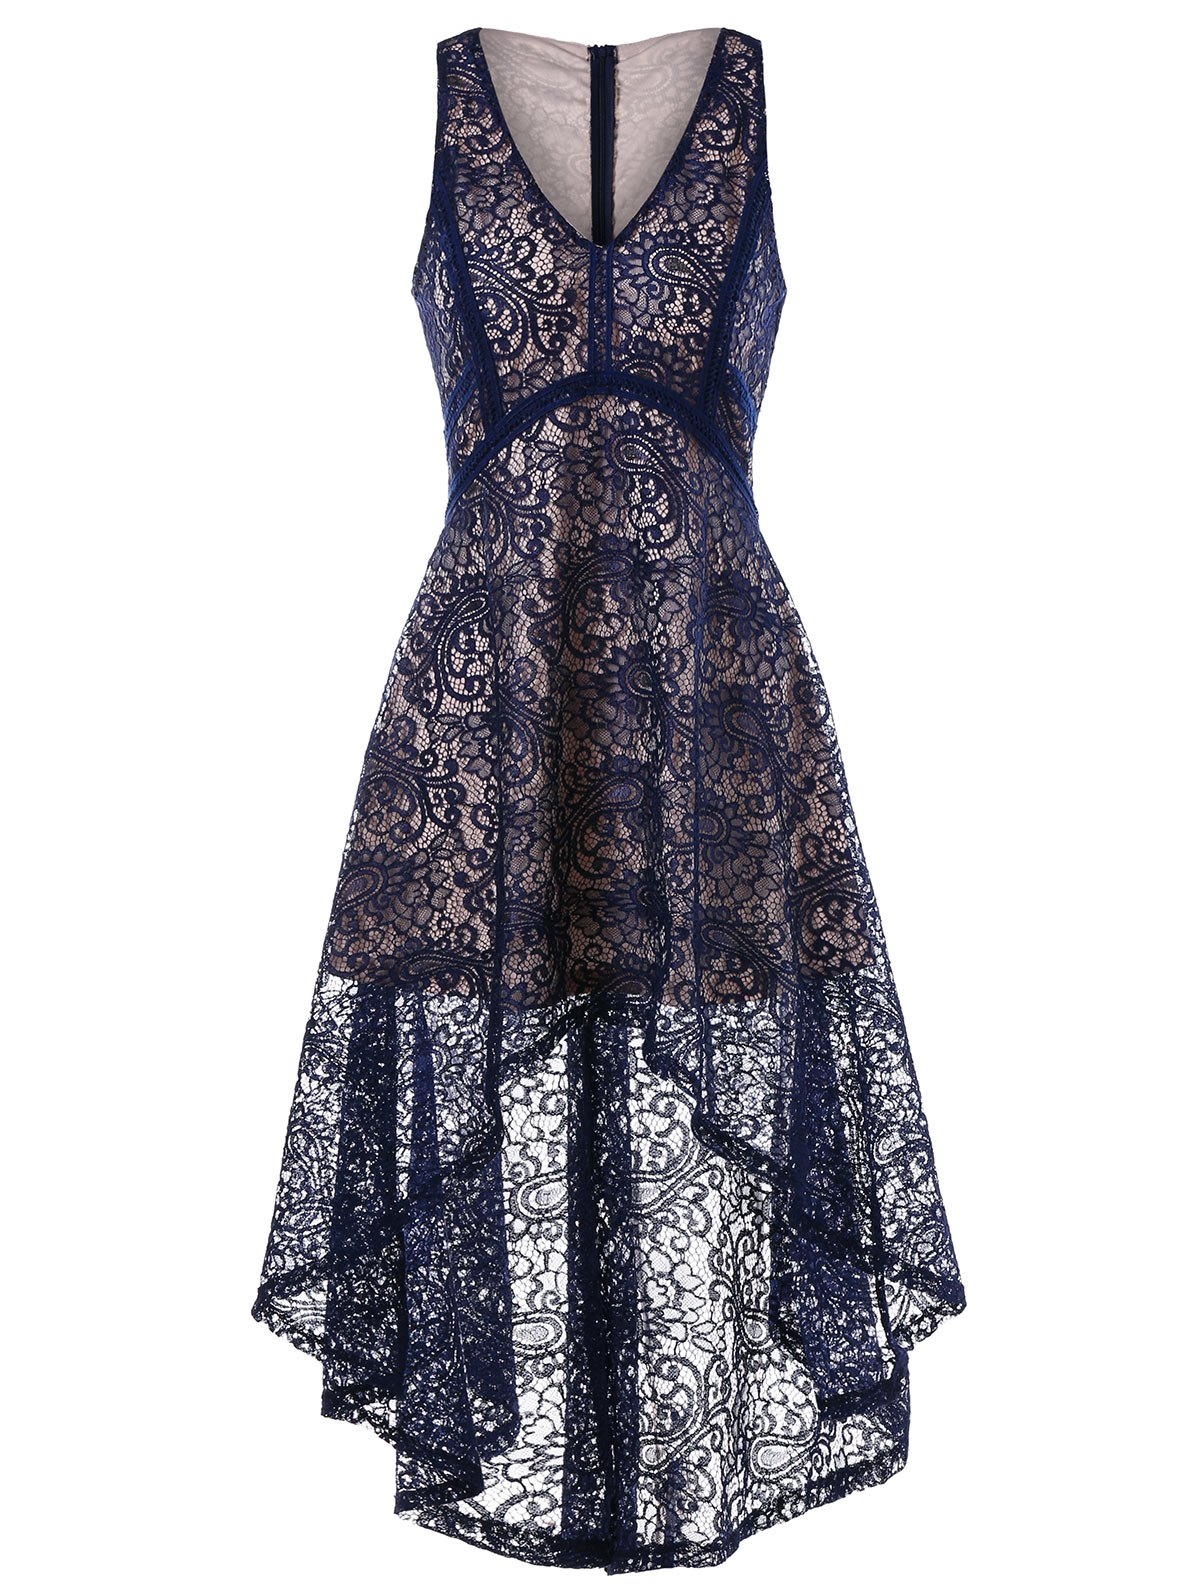 Sleeveless Empire Waist High Low Lace Dress - NAVY BLUE XL